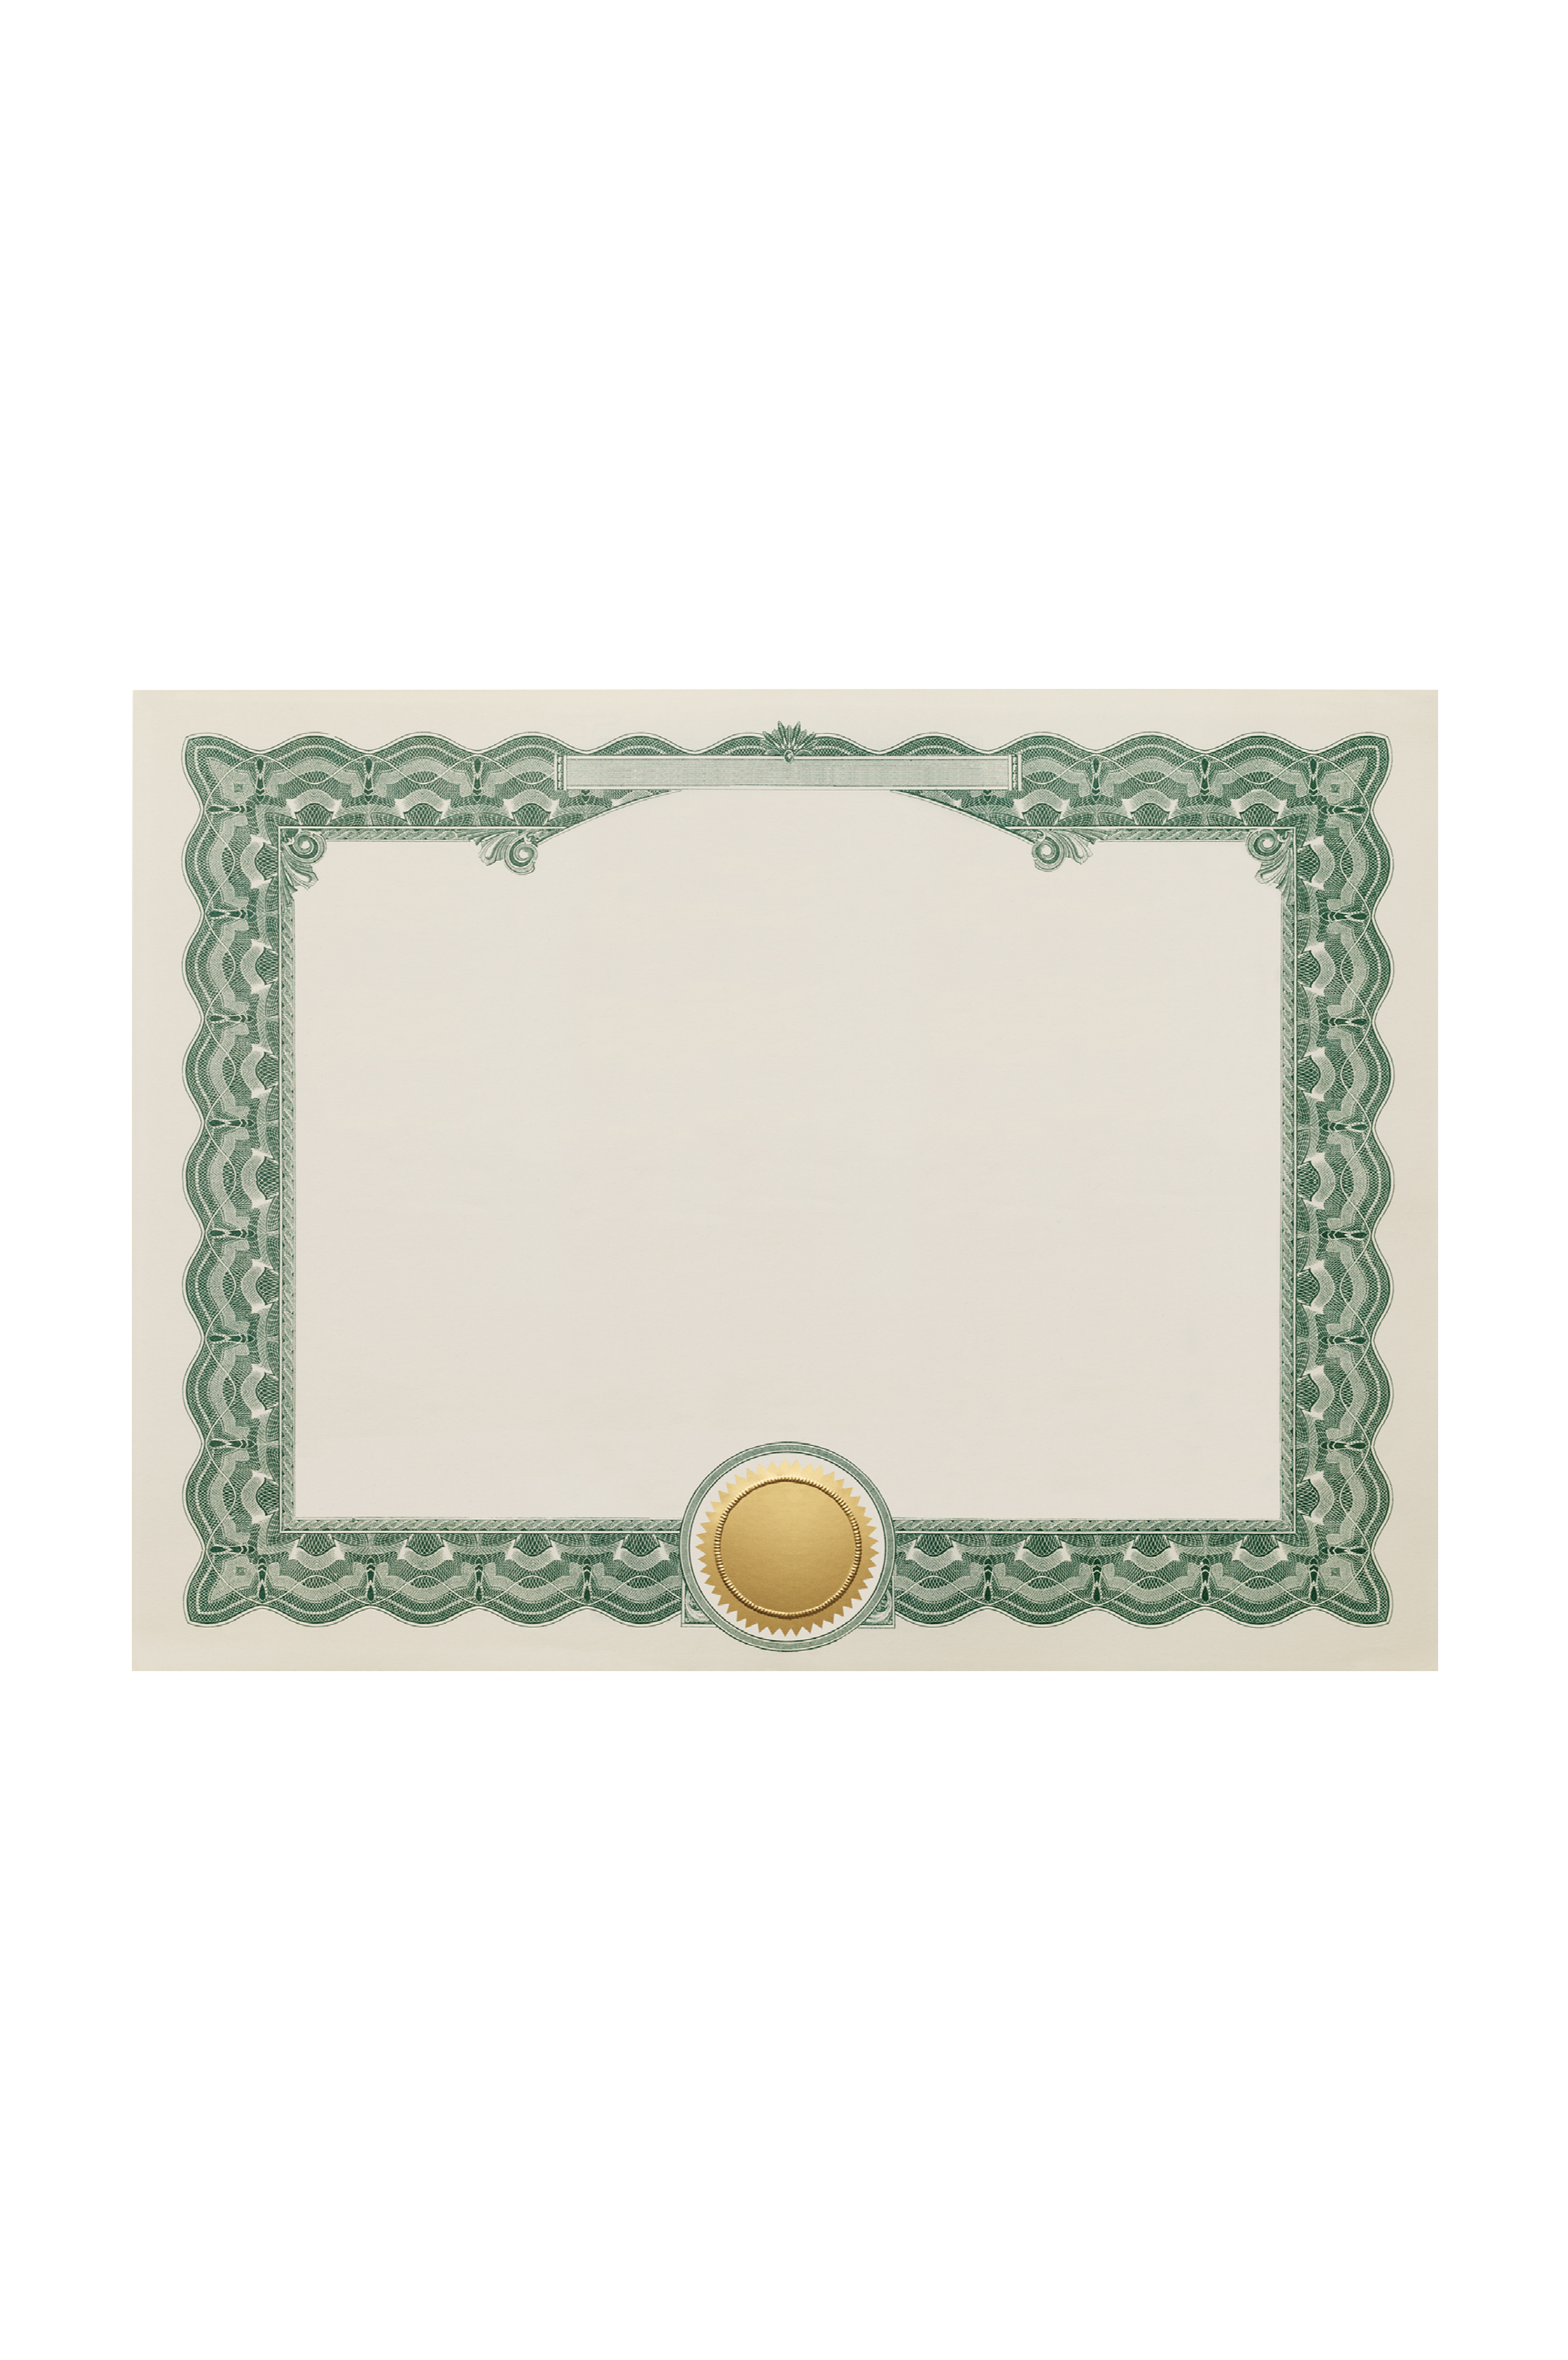 Blank congratulations certificate template free download yelopaper Gallery